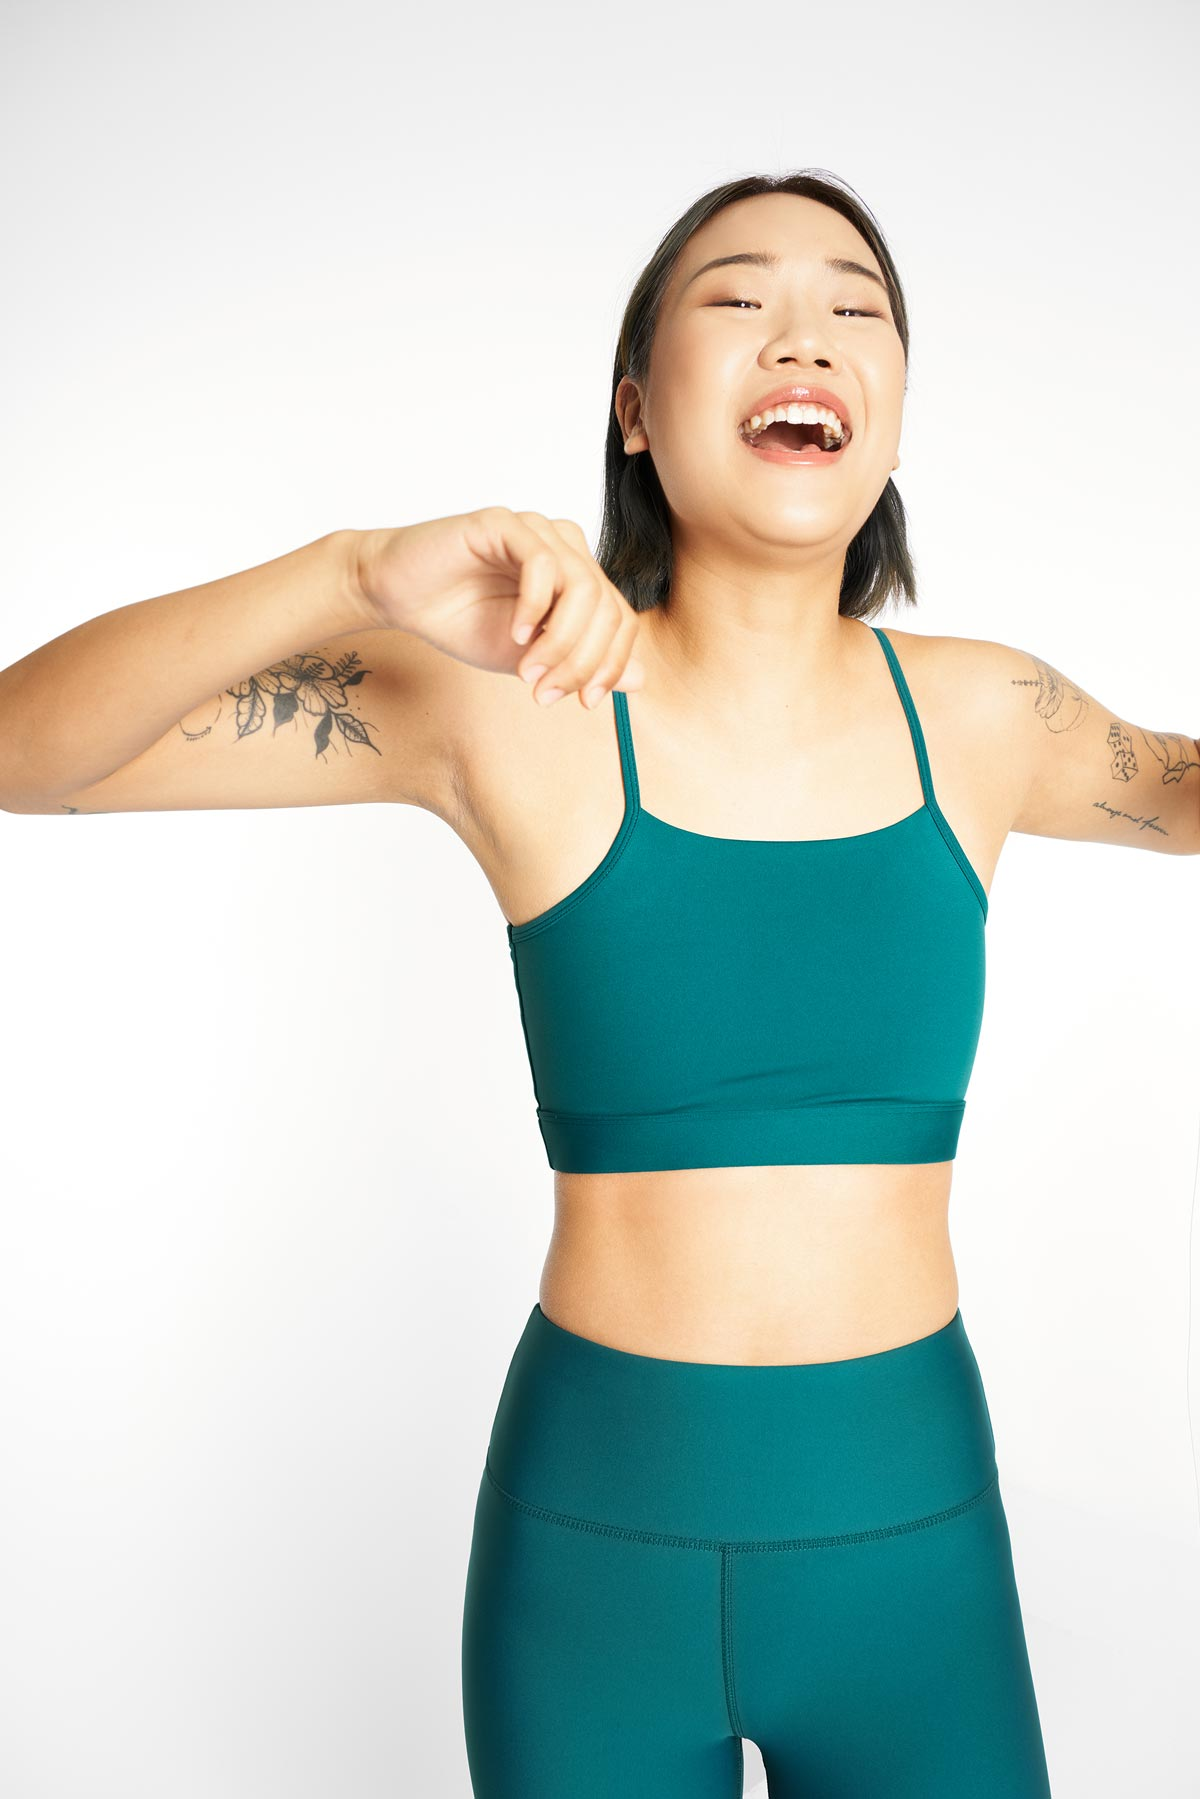 ro/an moringa bra teal front view with matcha teal legging